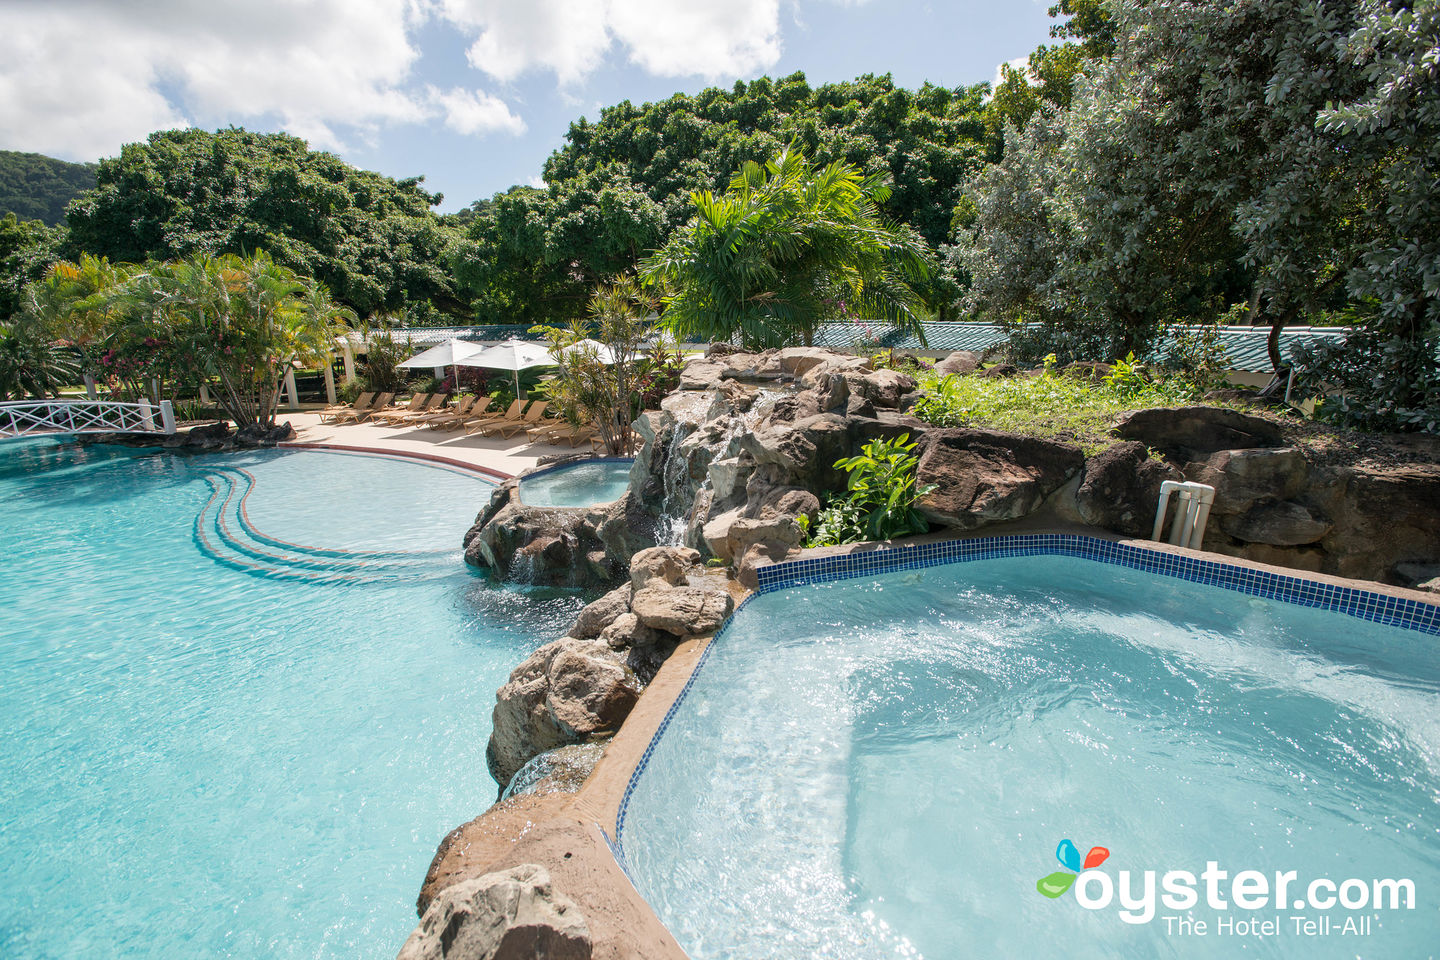 The Best Kid Friendly Hotels In Grenada Updated 2019 Oyster Com